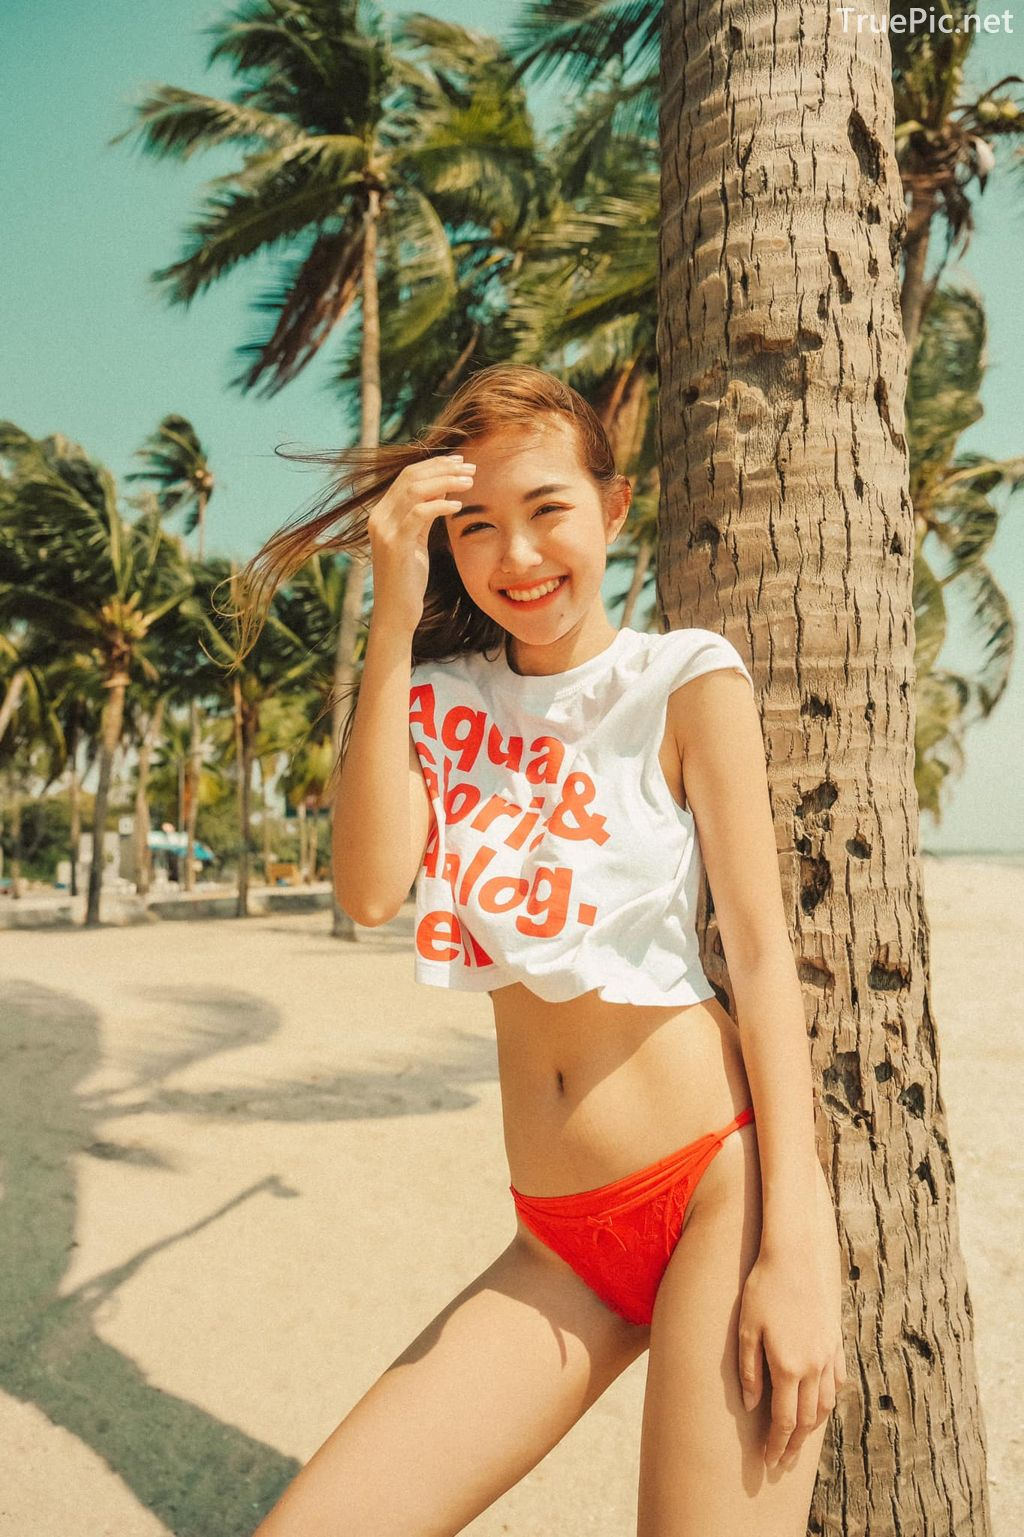 Image-Thailand-Cute Model-Pitcha-Srisattabuth-Feel-Like-Miami-TruePic.net- Picture-6